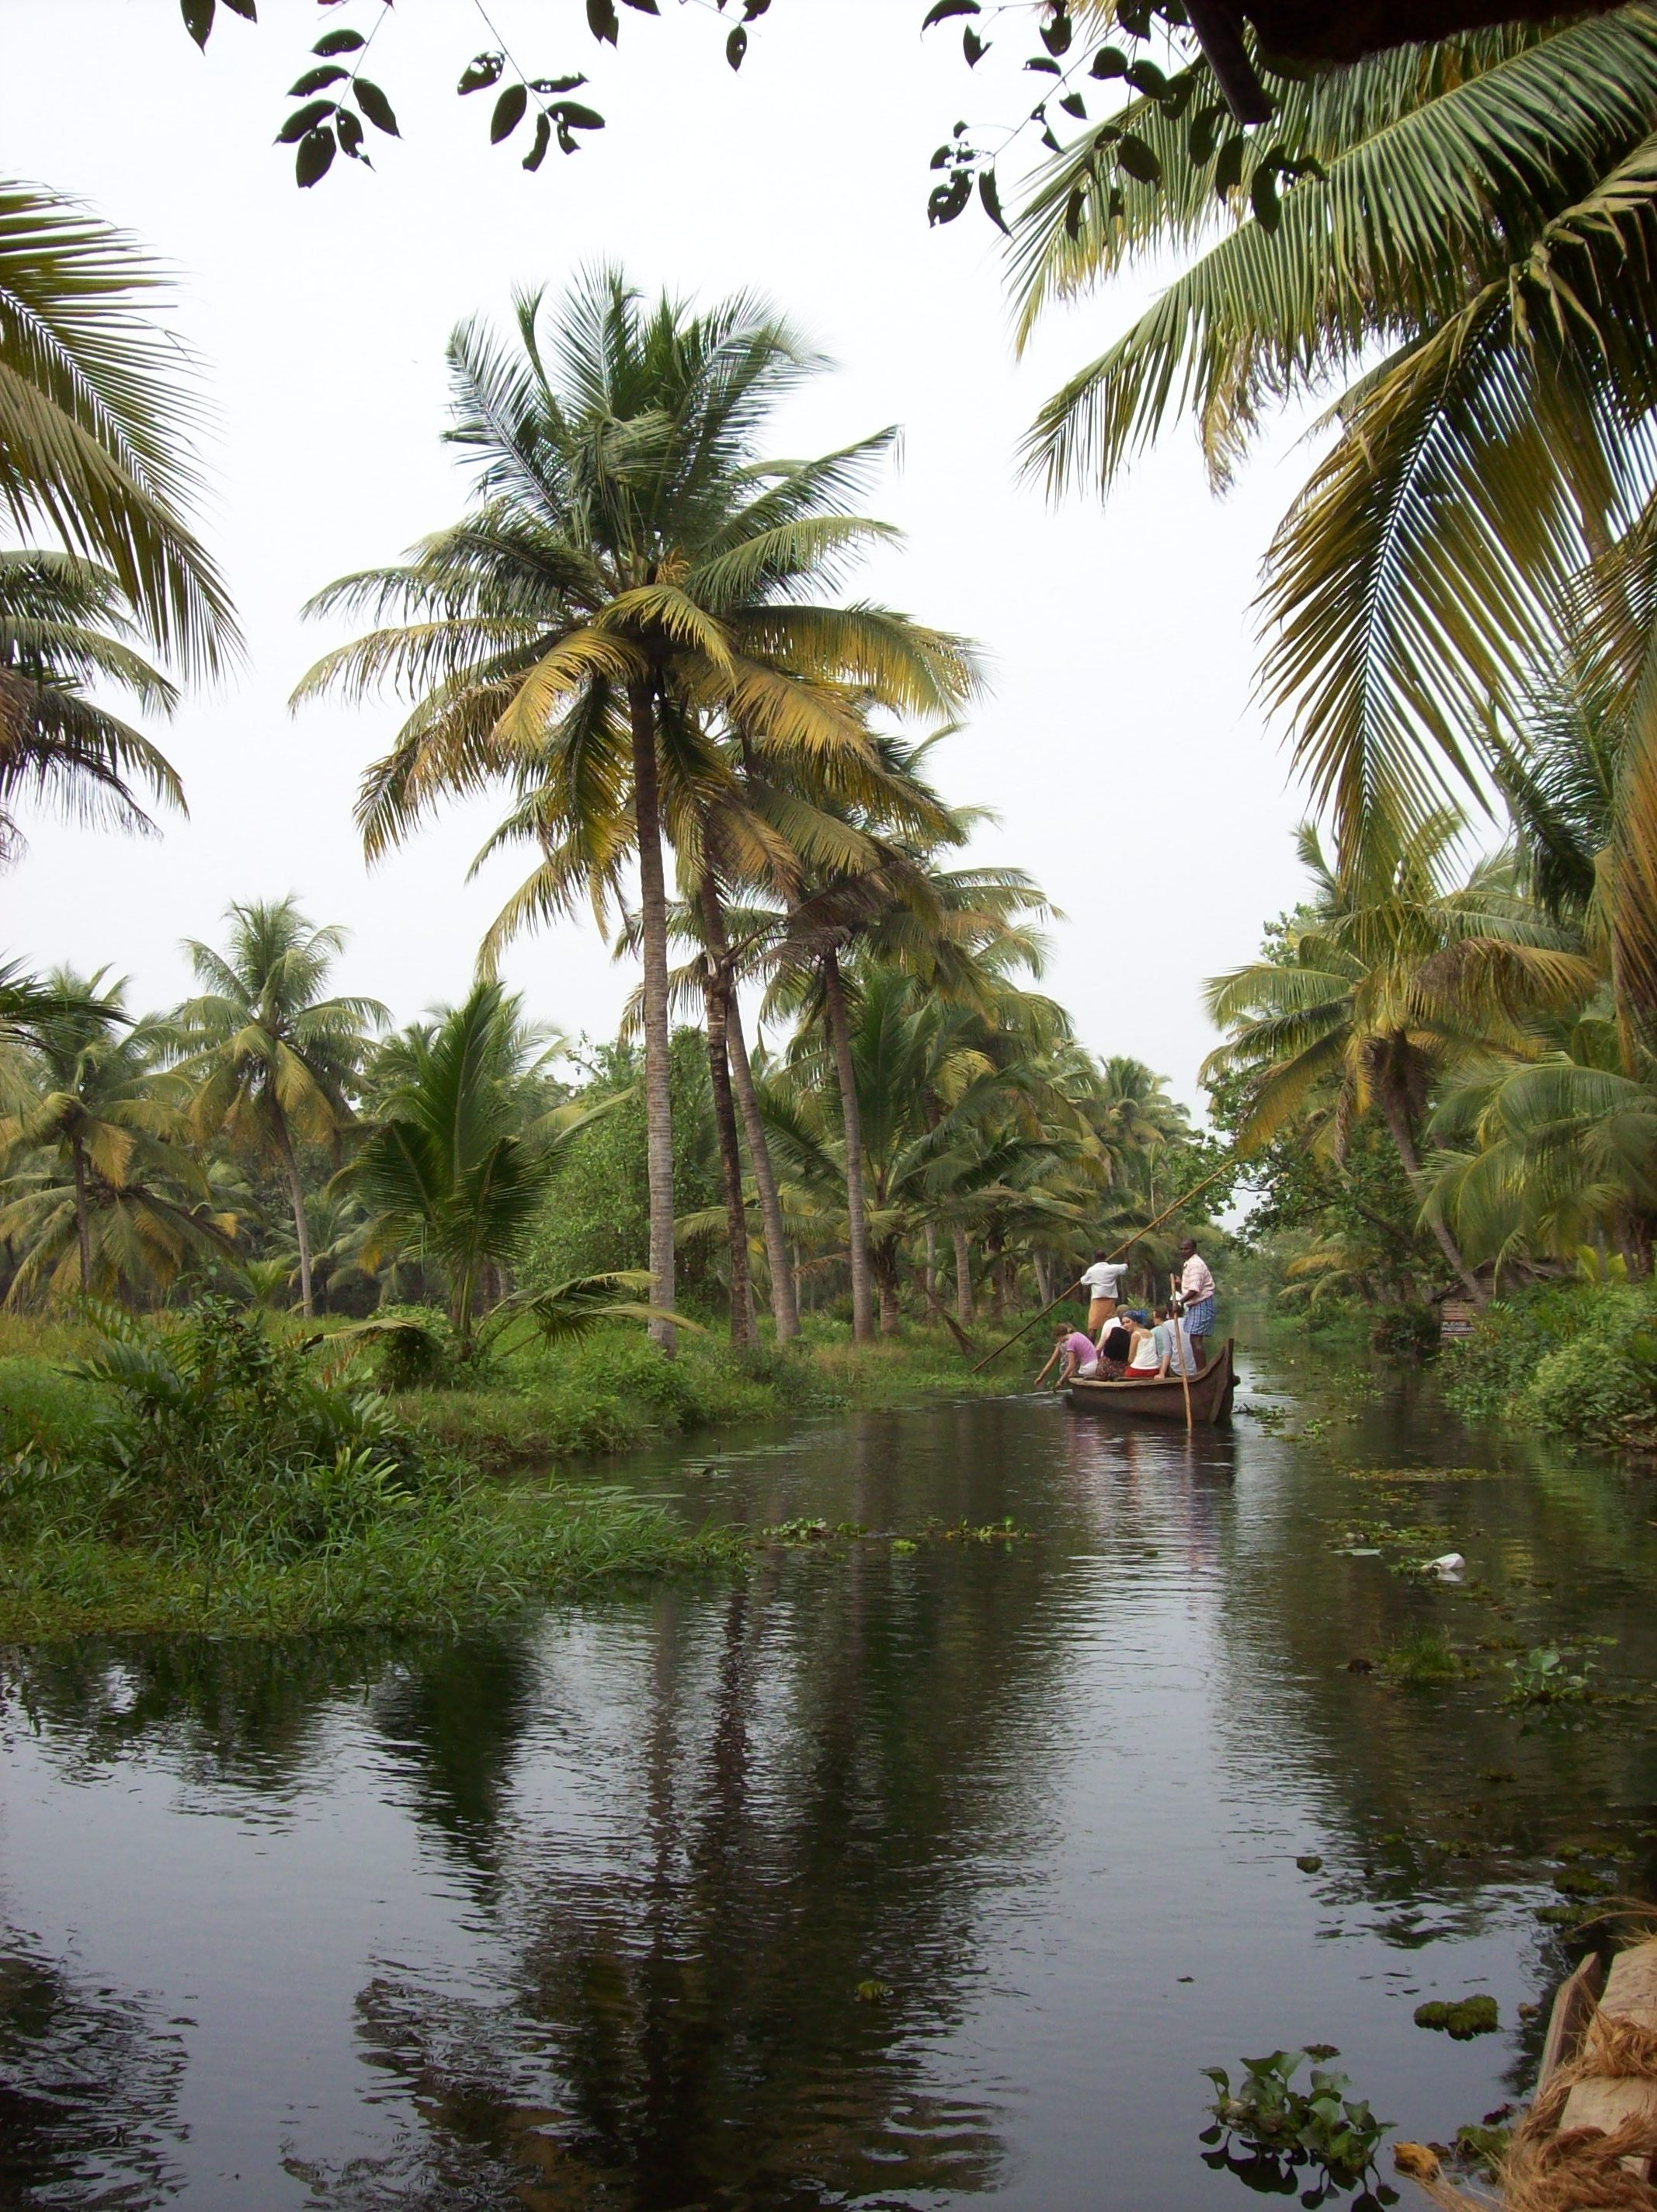 Trees by the river, Boat, India, Palm, River, HQ Photo